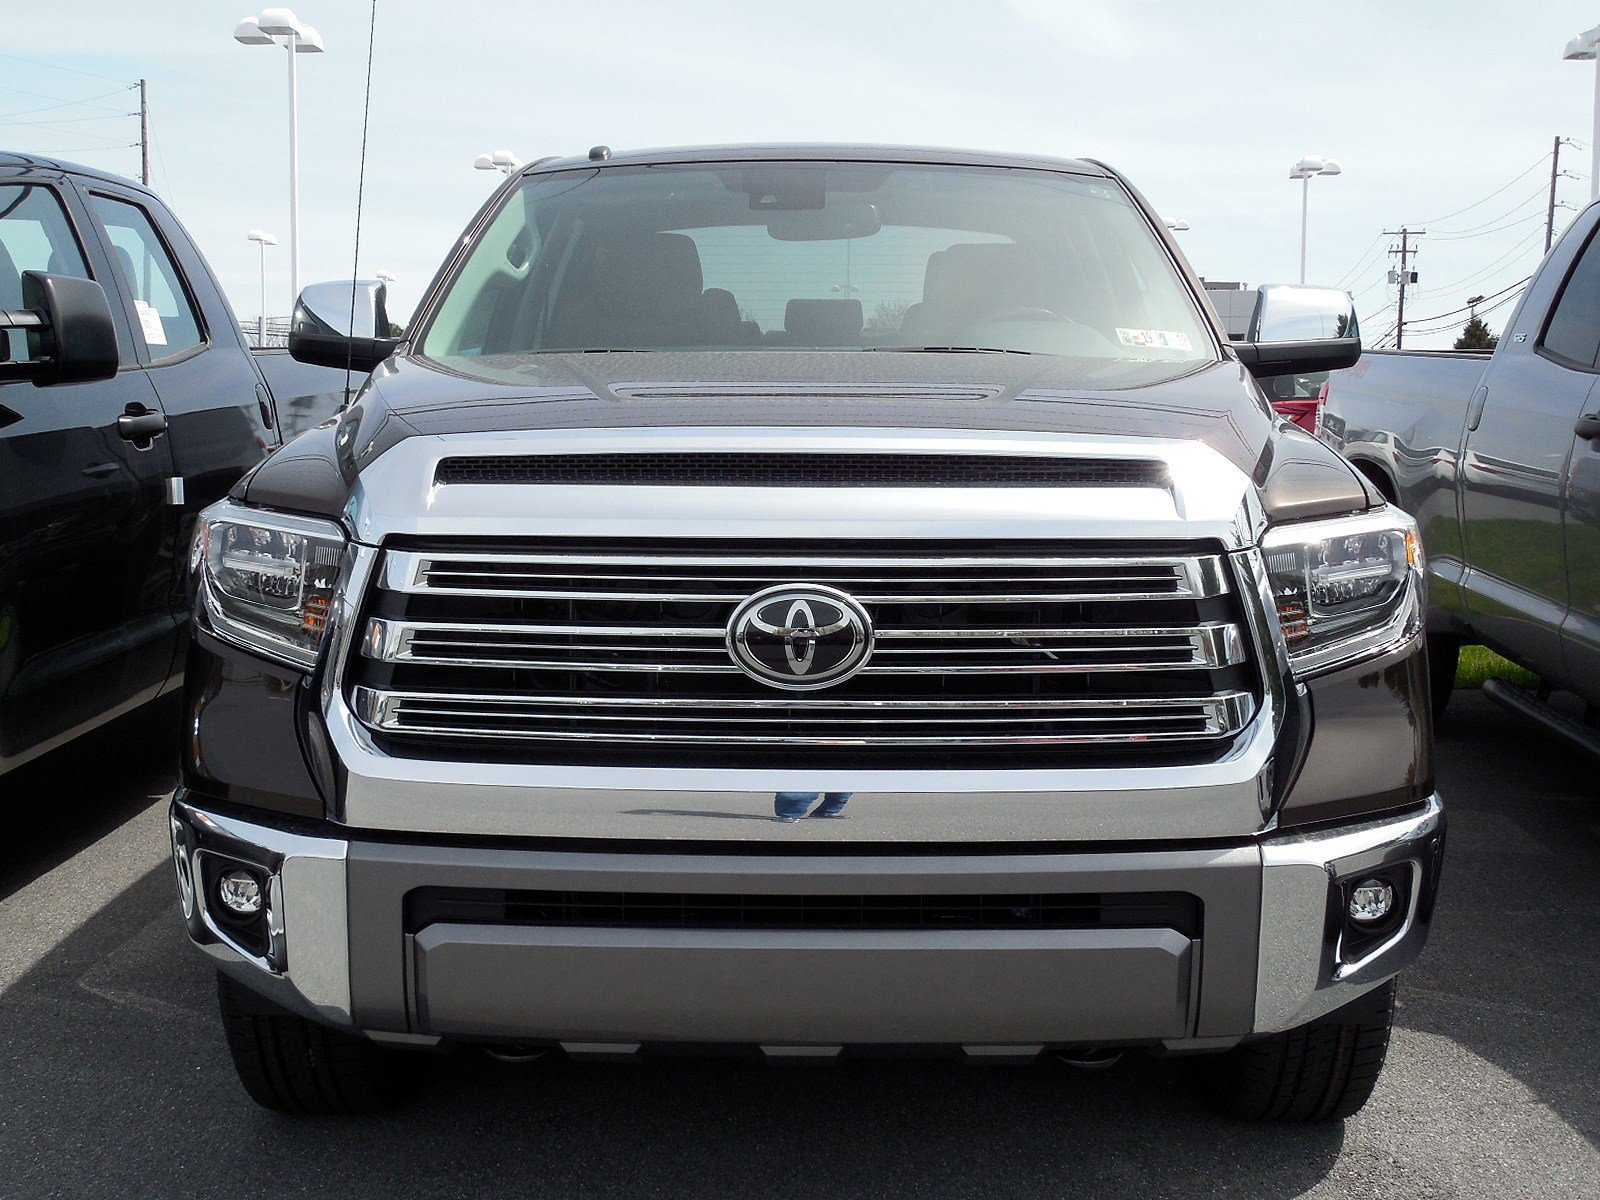 New 2018 Toyota Tundra 1794 Edition CrewMax in East Petersburg